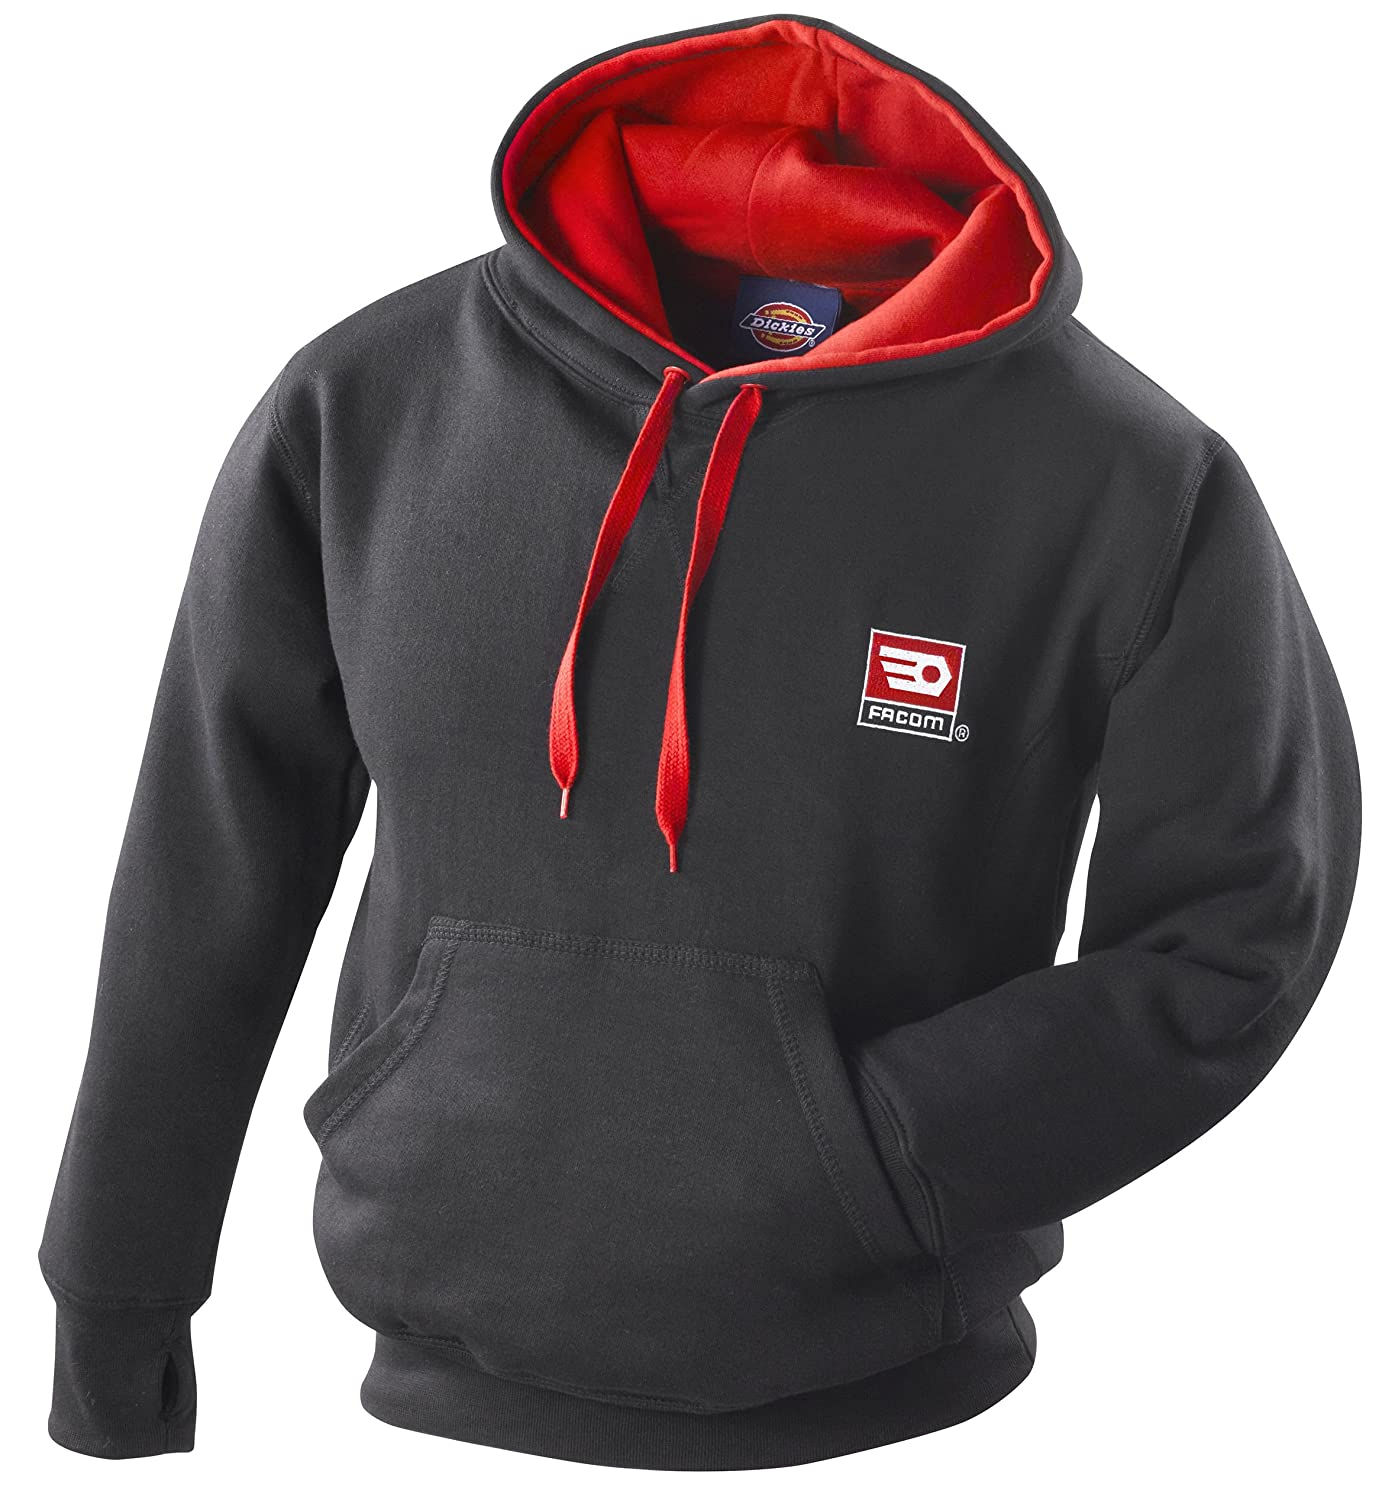 Facom SN.HOODY-S Sweat à capuche en Polyester/Coton Taille S